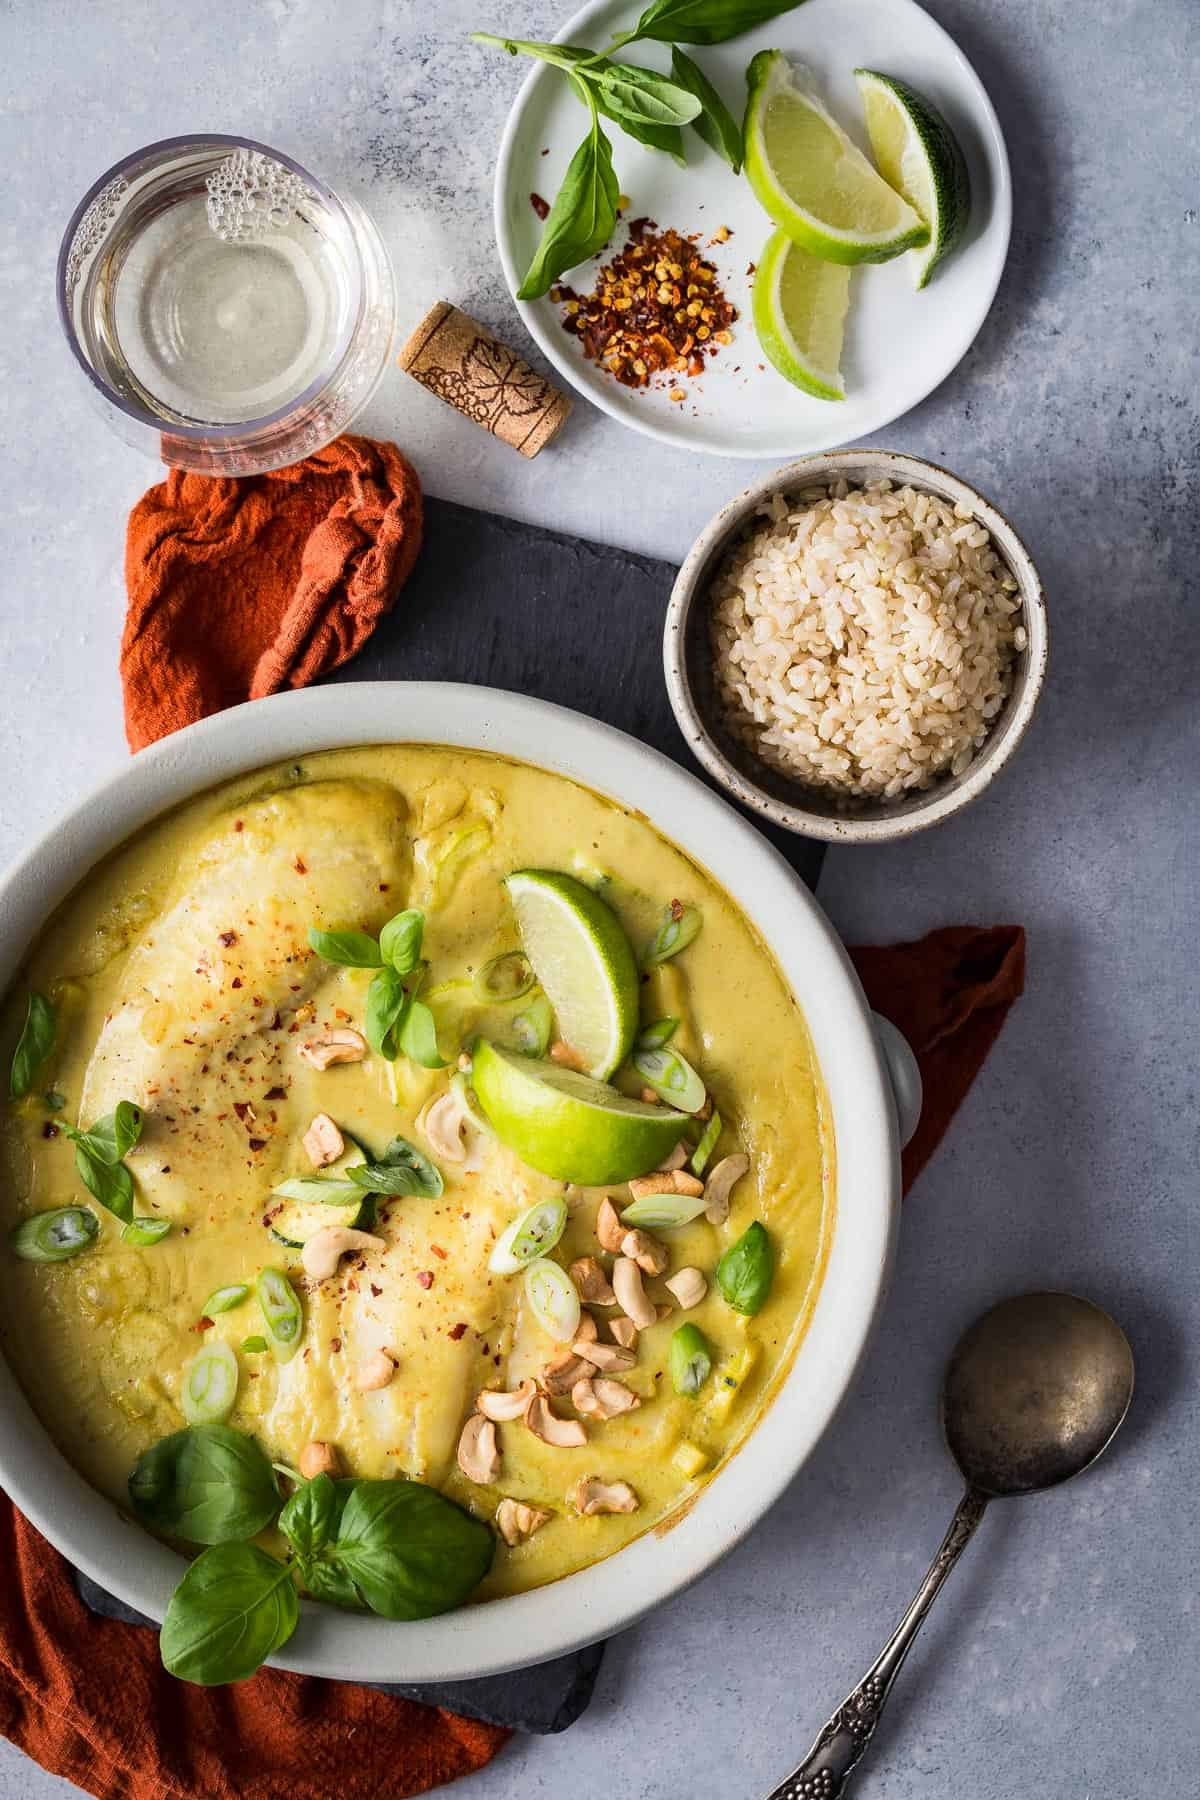 Thai style green curry sauce and fresh tilapia filets baked in creamy coconut milk and served with brown rice. Easy to make and just like your favorite takeout!